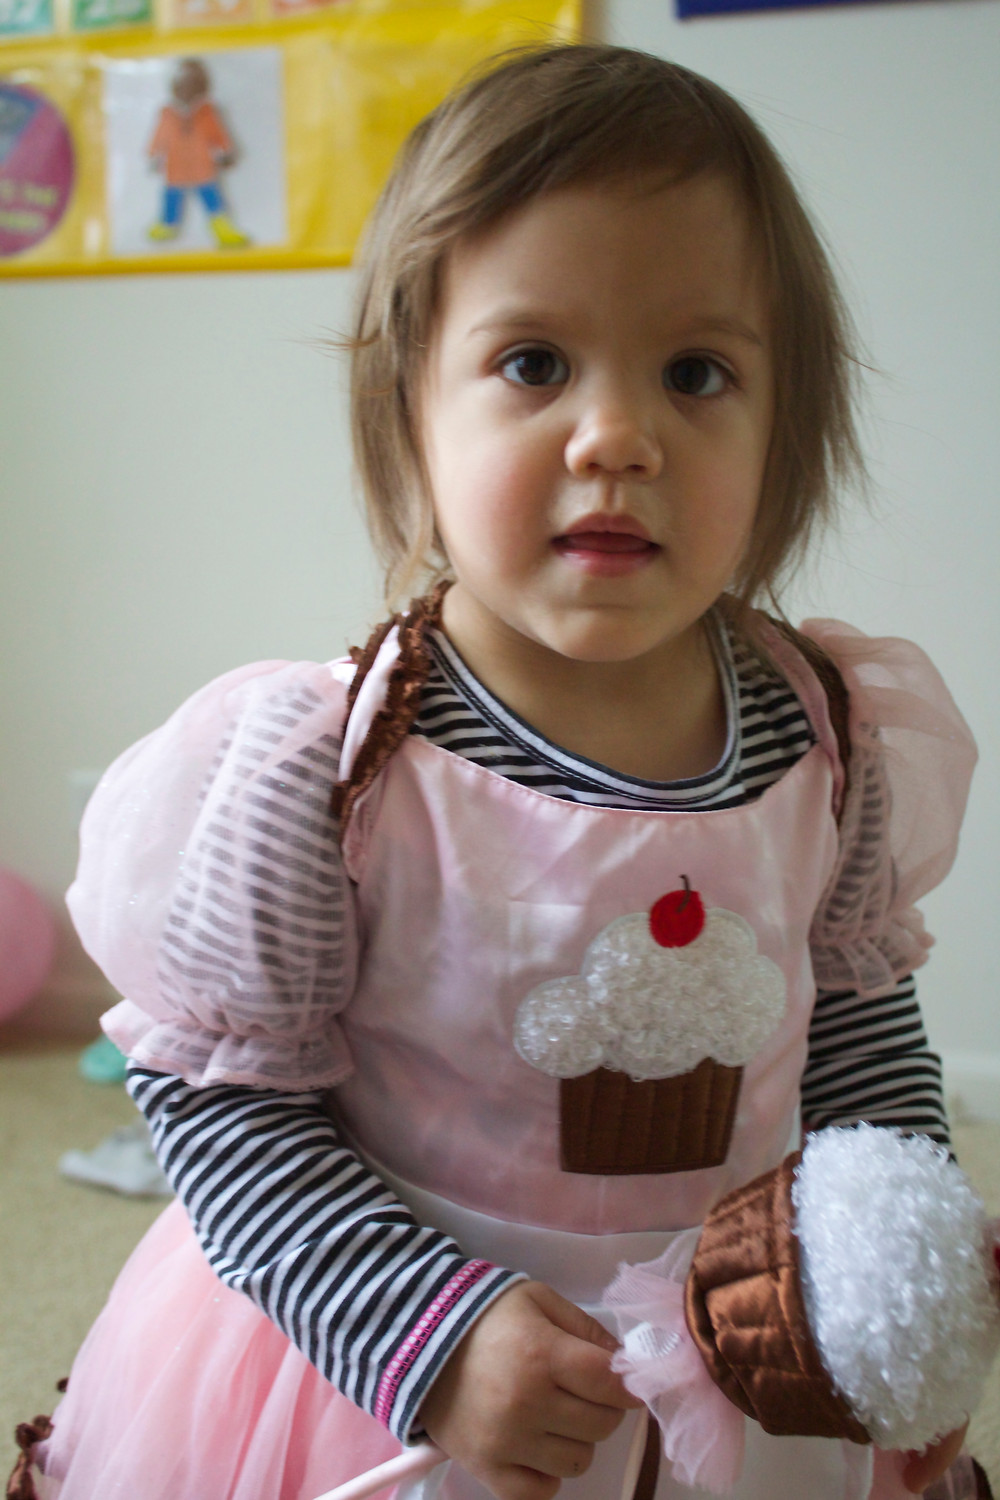 Playing dress-up at Blue Sky Daycare home daycare